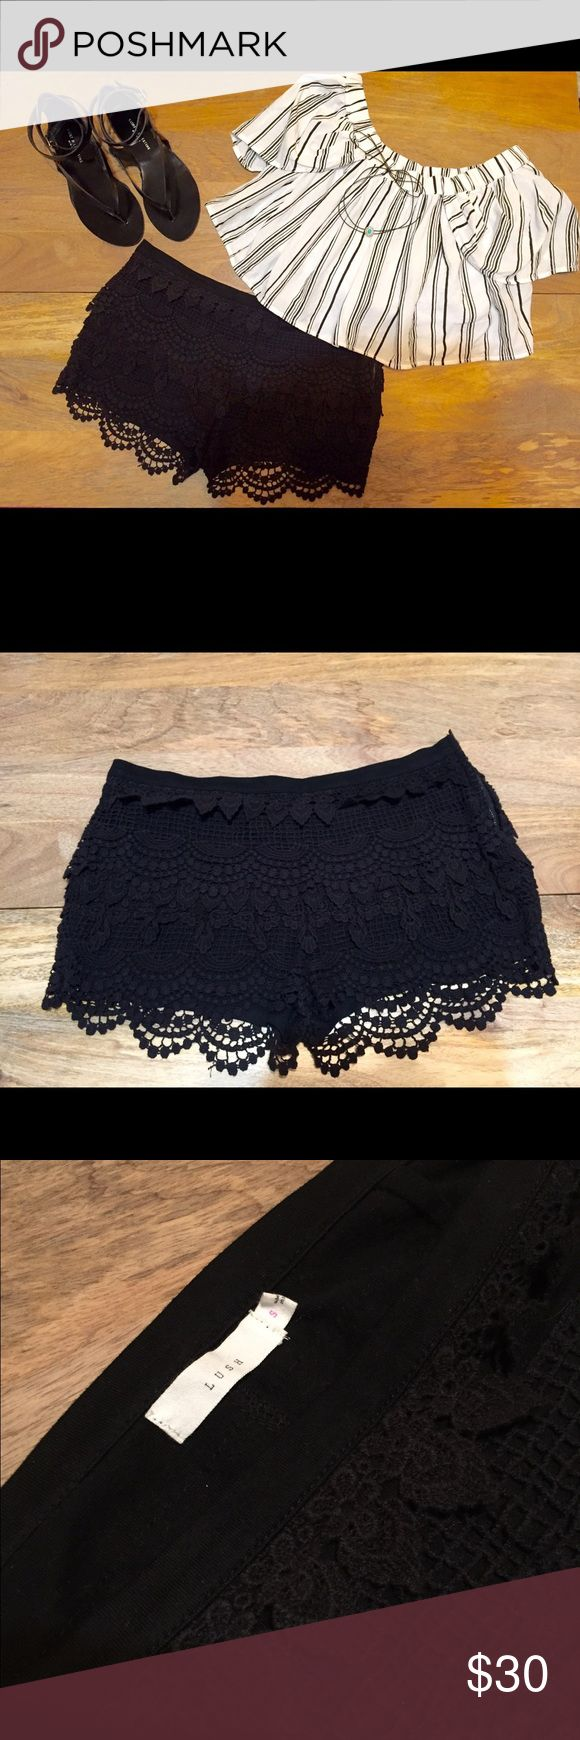 Size S Lush crochet shorts in black Lush Black Crochet Shorts with side zip and cotton lining Lush Shorts